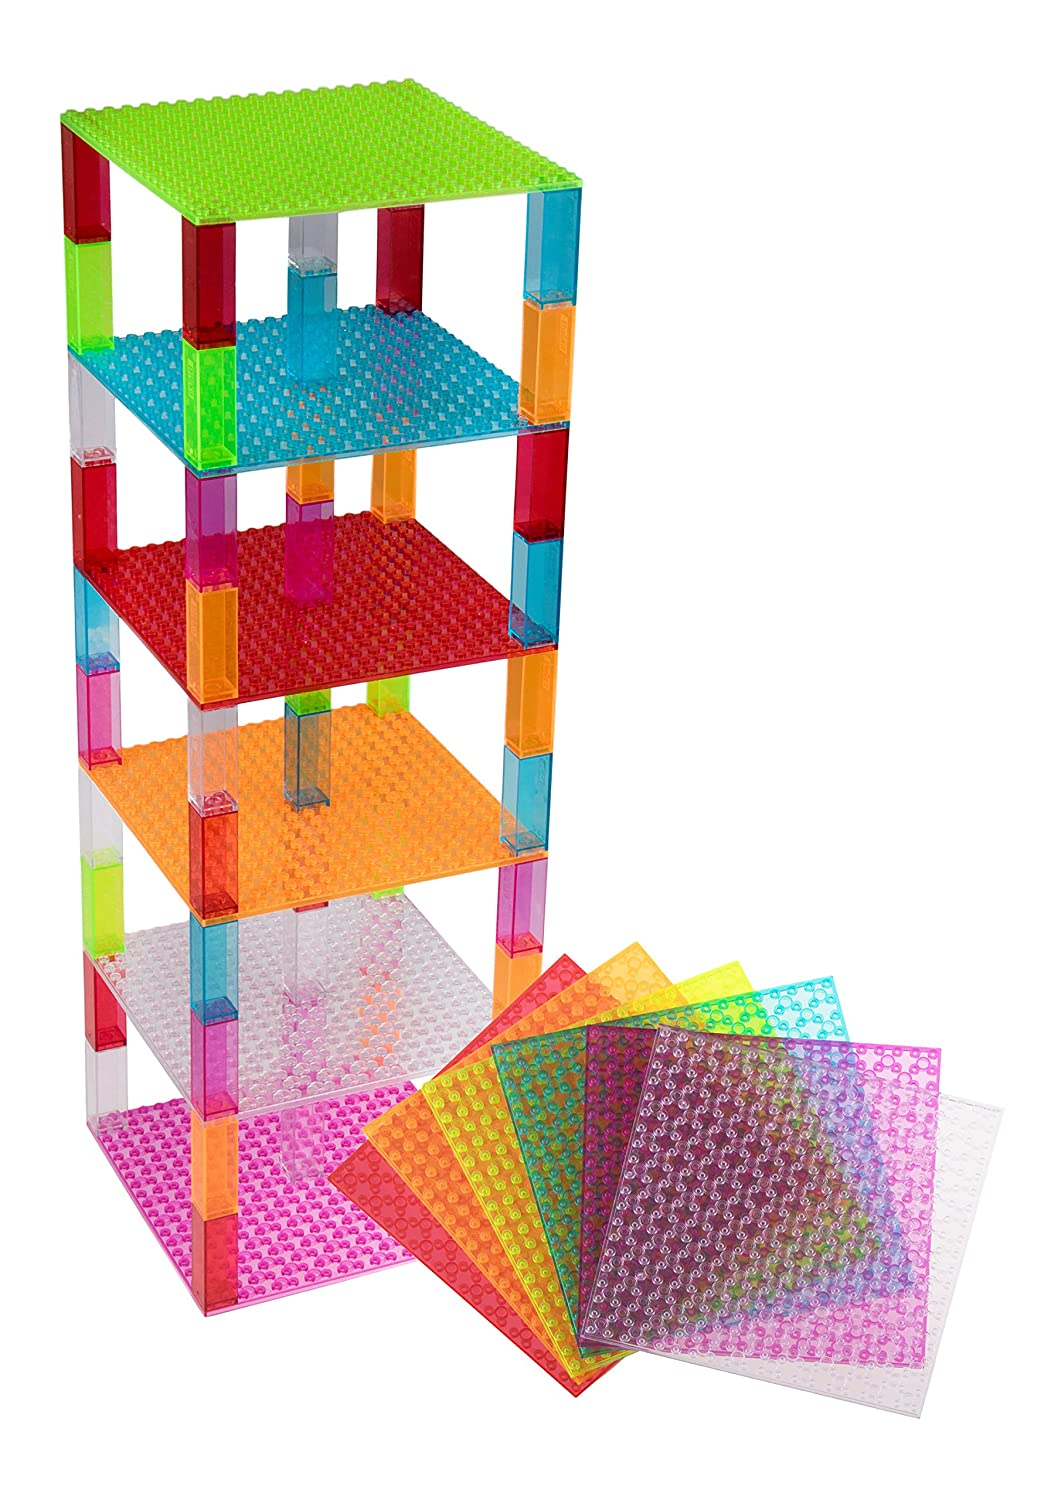 """Classic Stackable Baseplates 6"""" x 6"""" Brik Tower by Strictly Briks   100% Compatible with All Major Brands   Building Bricks for Towers & More   12 Base Plates & 120 Stackers in 12 Fun Clear Colors Review"""